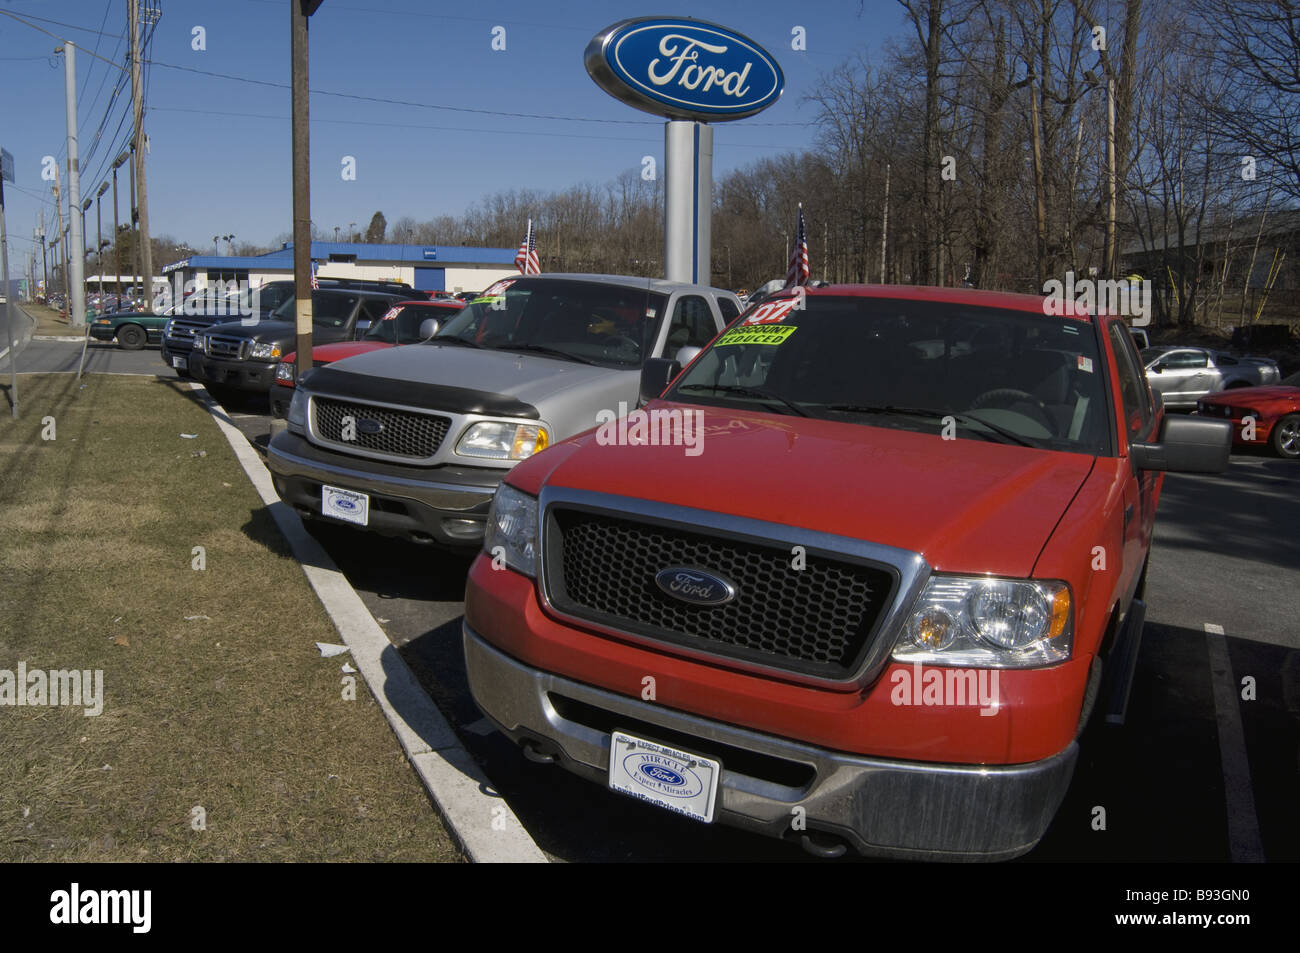 Ford car dealership lot during 2009 recession full of unsold cars ...